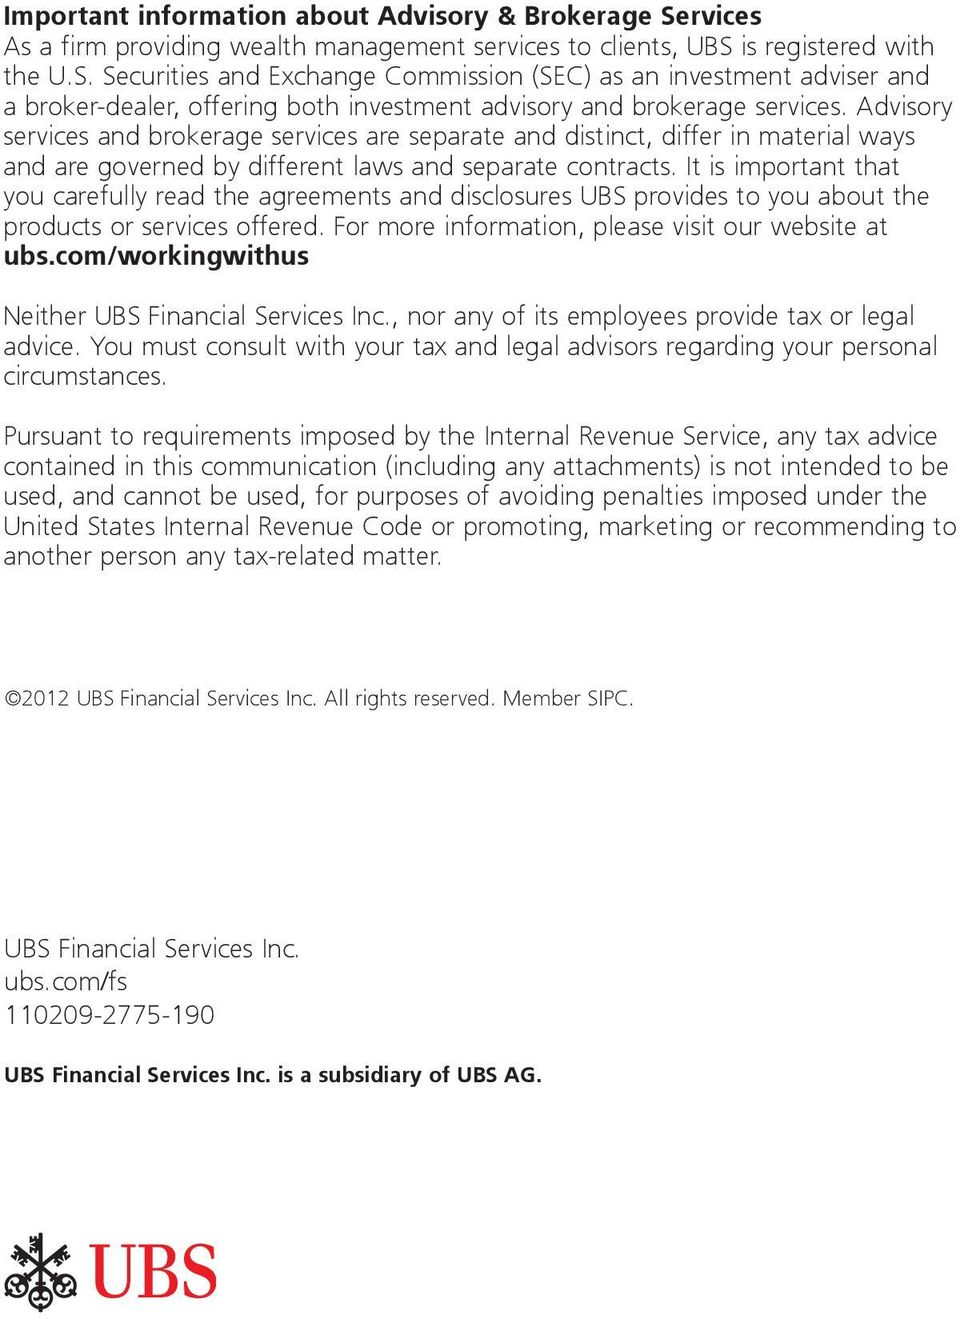 It is important that you carefully read the agreements and disclosures UBS provides to you about the products or services offered. For more information, please visit our website at ubs.